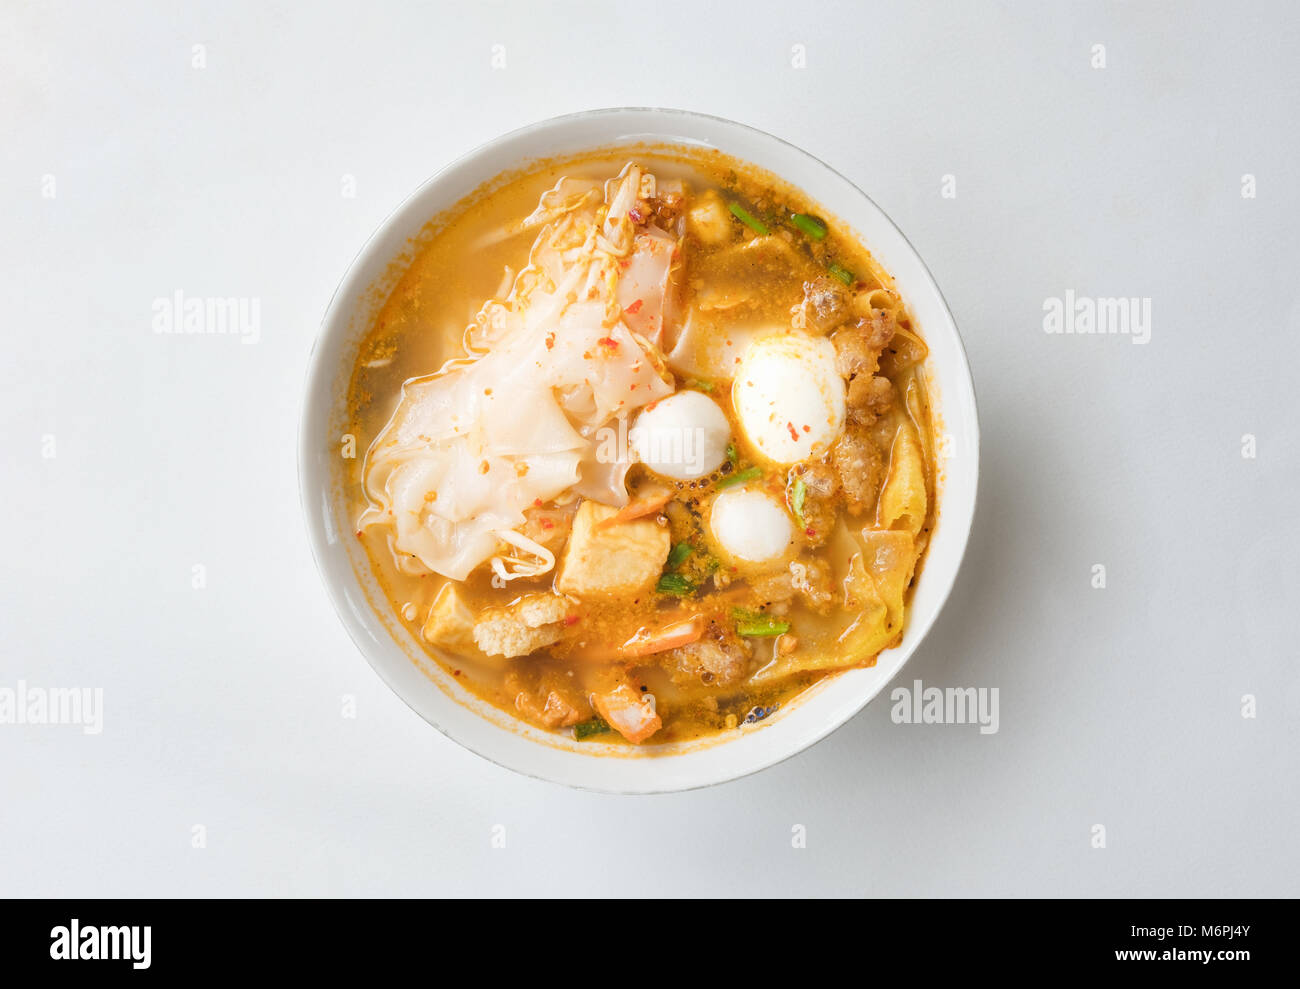 Top view of spicy TOM YAM pork noodles soup isolated on